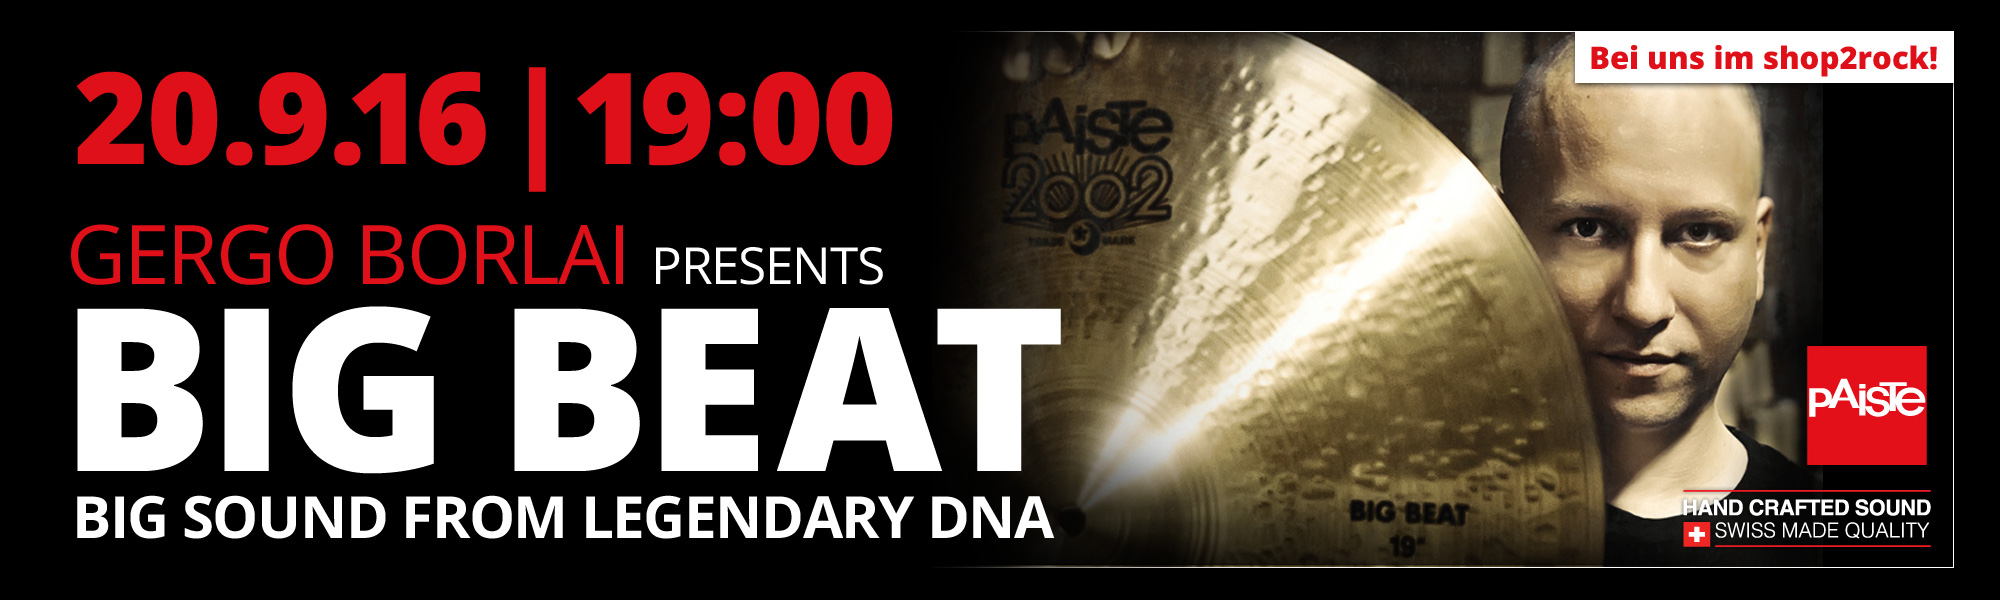 Big Beat Paiste Workshop - Gergo Bolai live